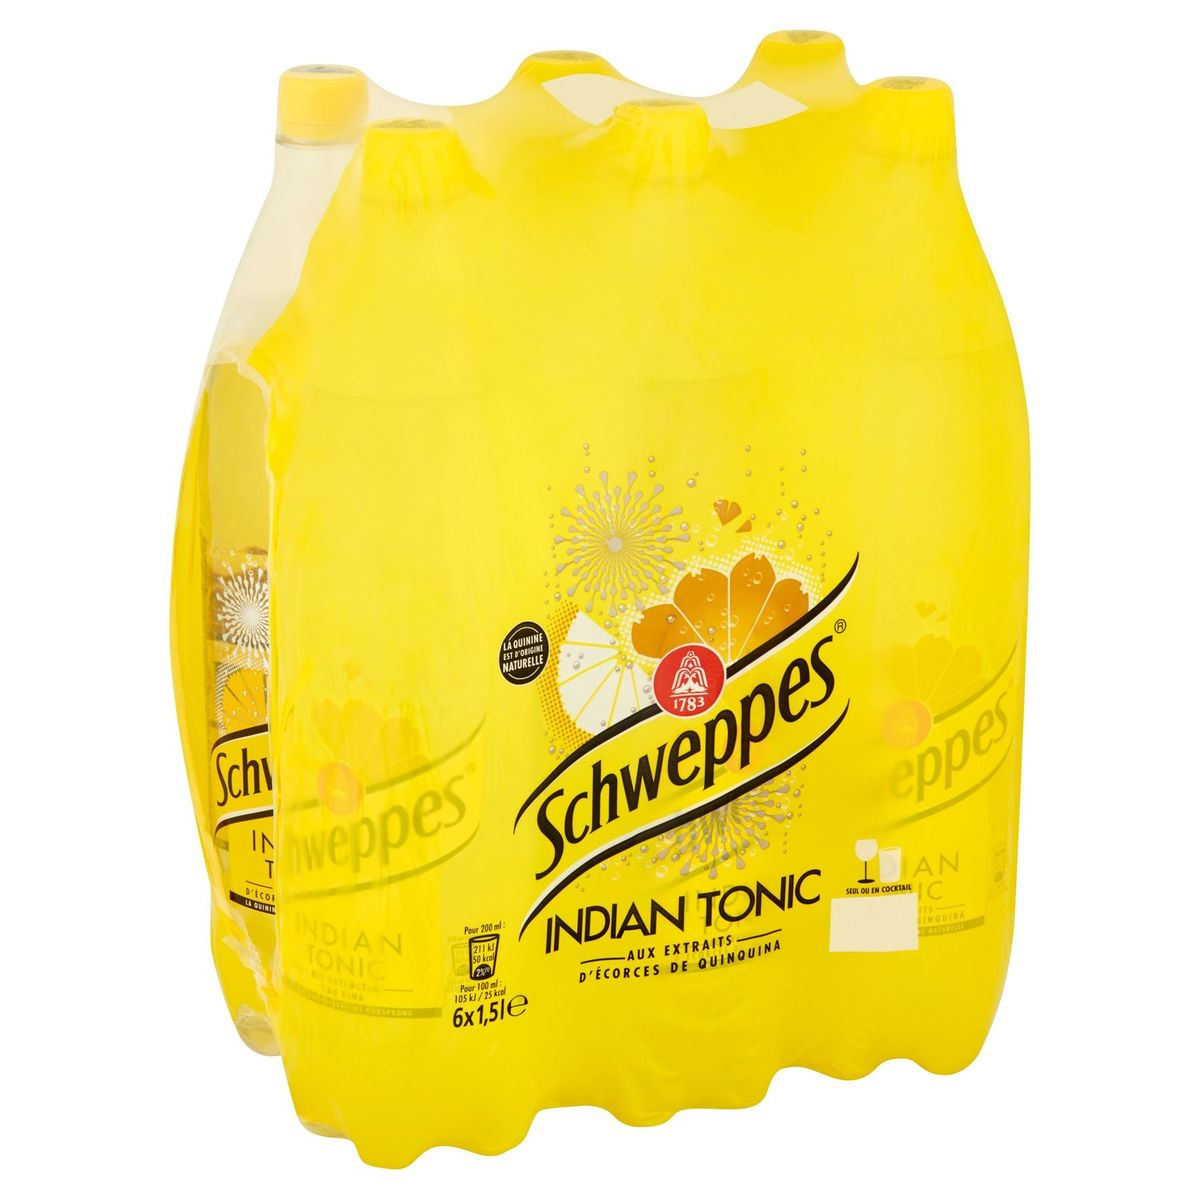 Schweppes Indian Tonic 6x150cl